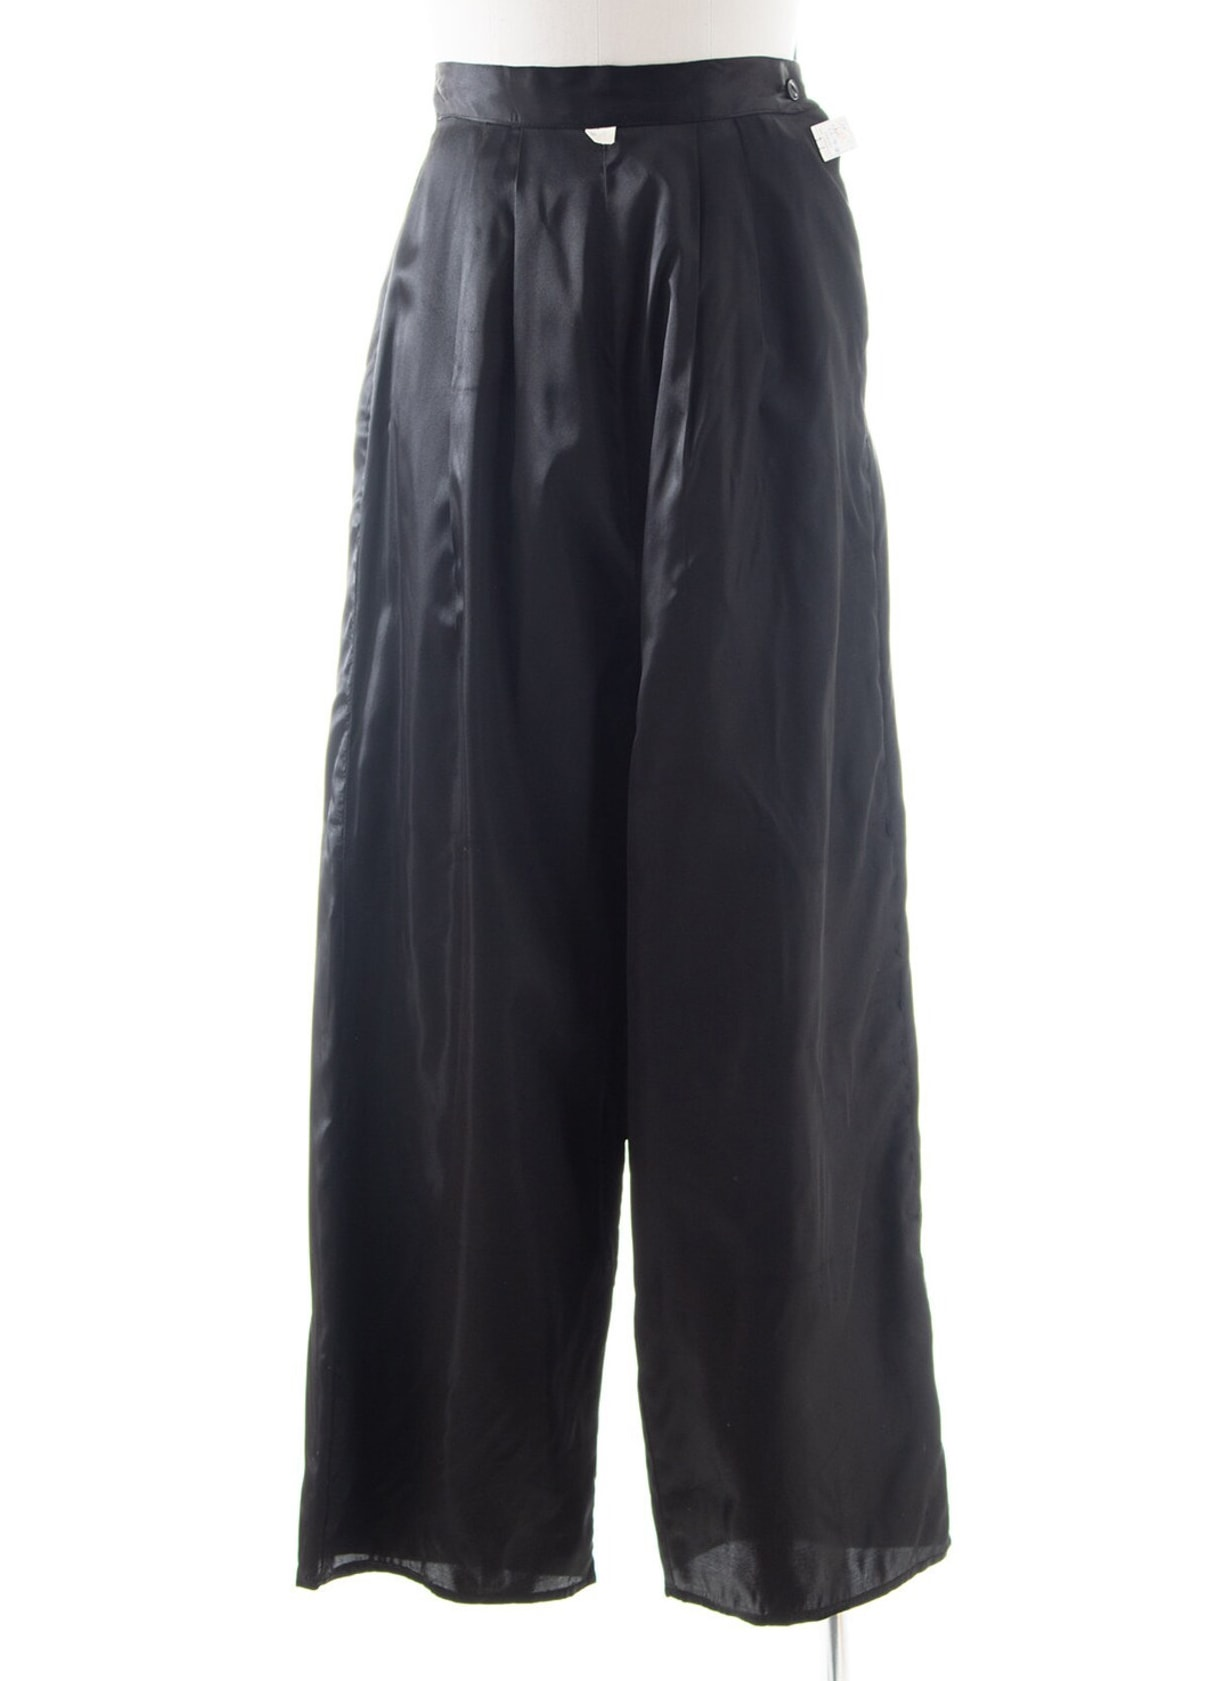 Vintage 1940s Pants | 40s DEADSTOCK with Tags Black Satin High Waisted Wide Leg Evening Party Trousers (small)